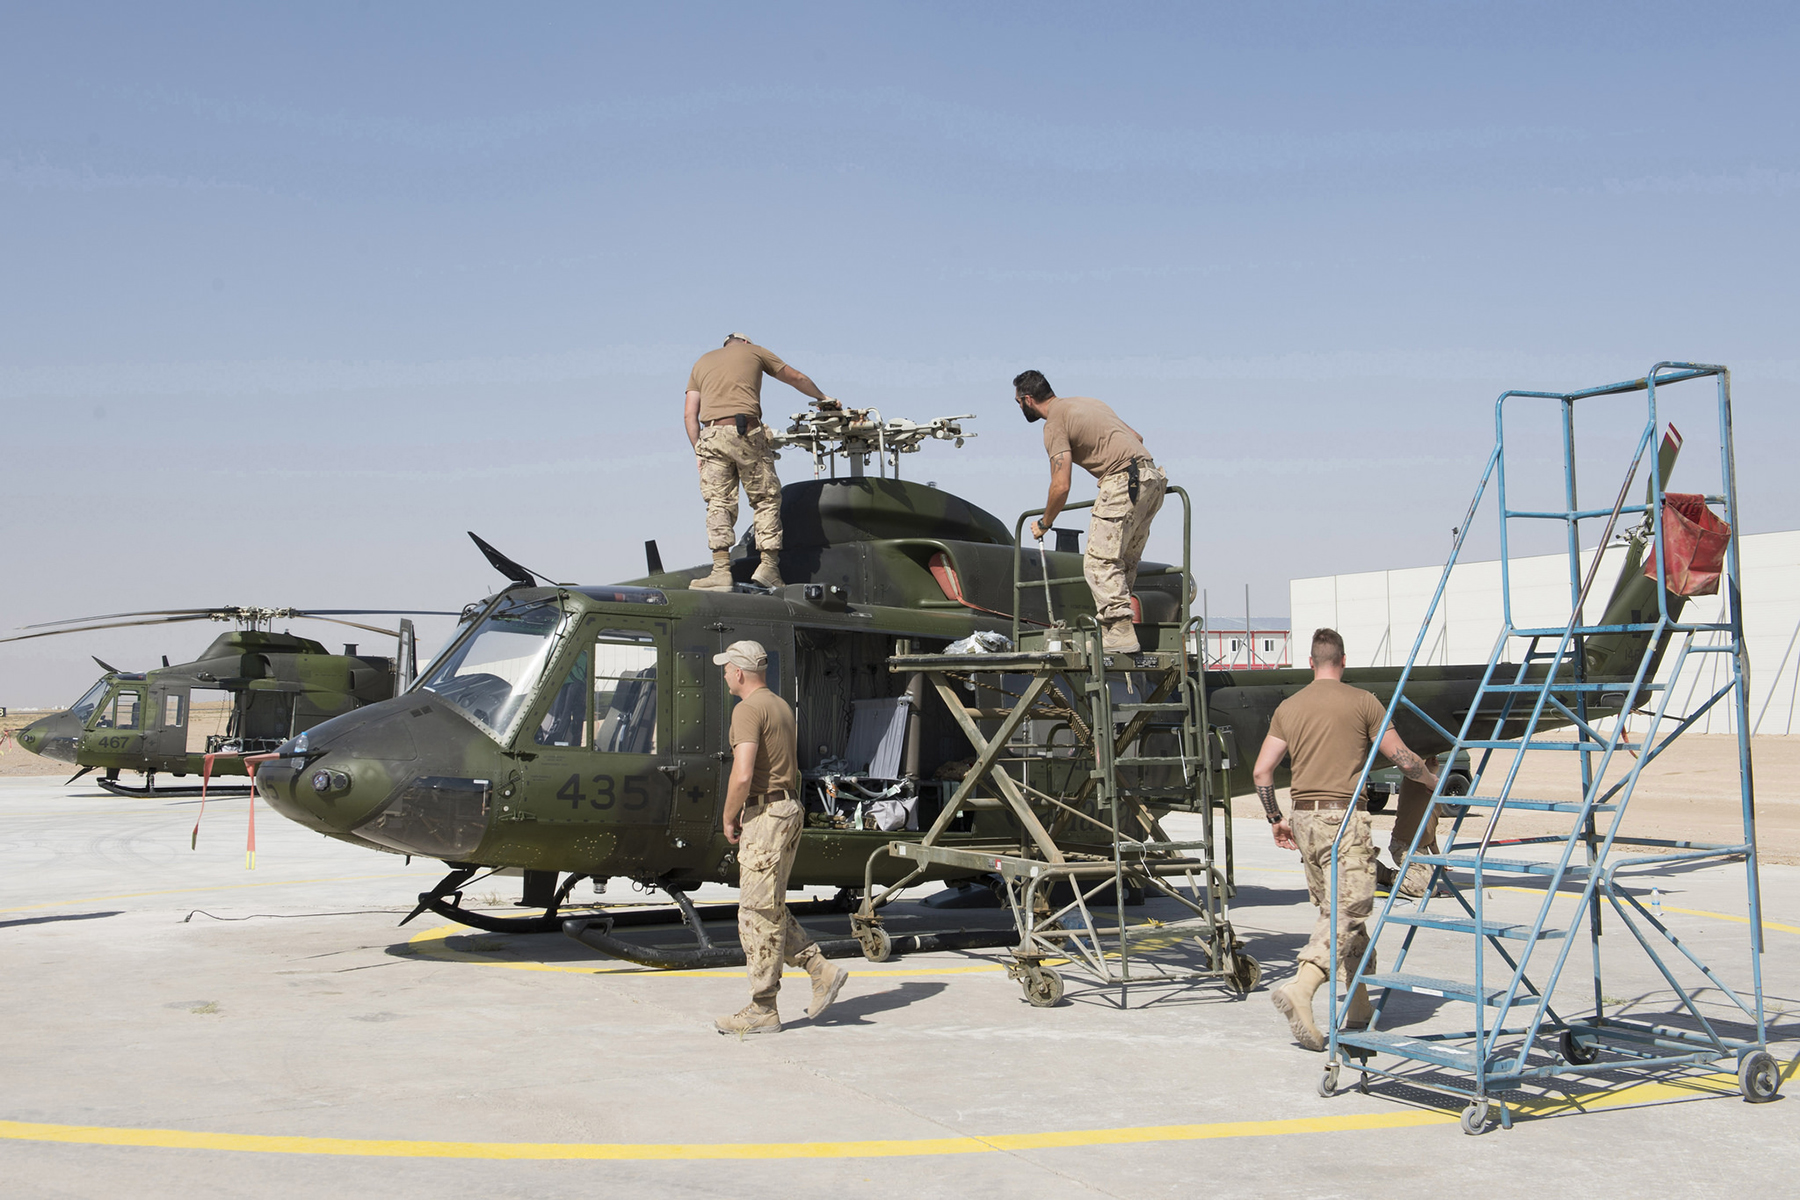 During Operation Impact, Canadian Armed Forces personnel from the Tactical Aviation Detachment assemble and conduct start-up checks on a CH-146 Griffon helicopter in Erbil, Iraq. From the time they enrol, it takes most technicians about three years before they are actively fixing aircraft in the field. PHOTO: DND, KW05-2016-0168-009